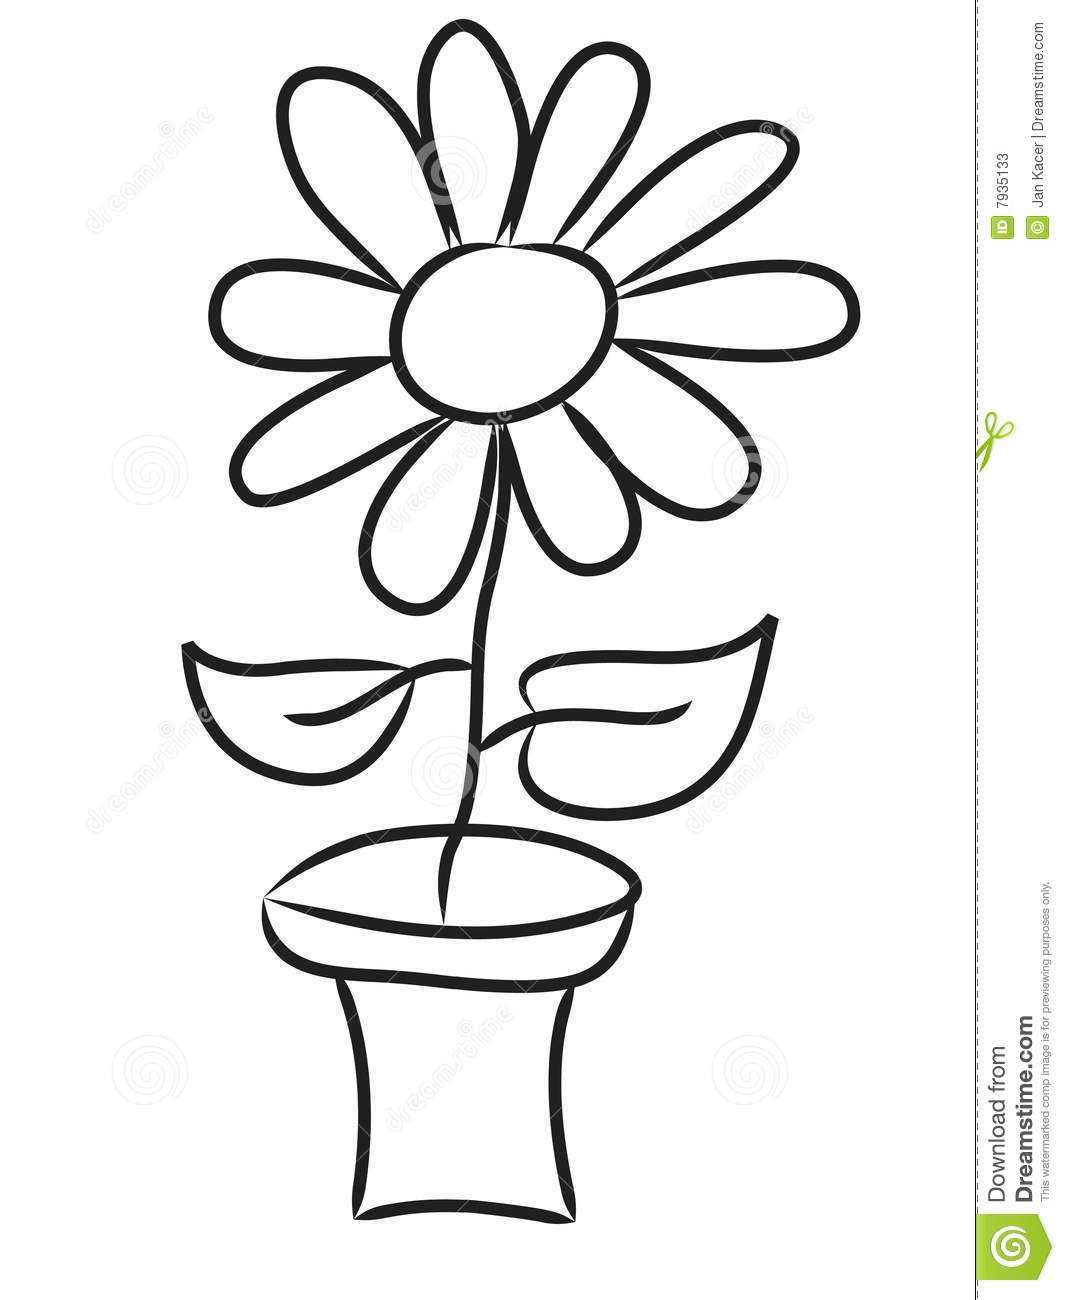 Dandelion Flower Clip Royalty Free Auto Electrical Wiring Diagram Clifford Alarms B134718b Hand Draw Flowers Stock Photos